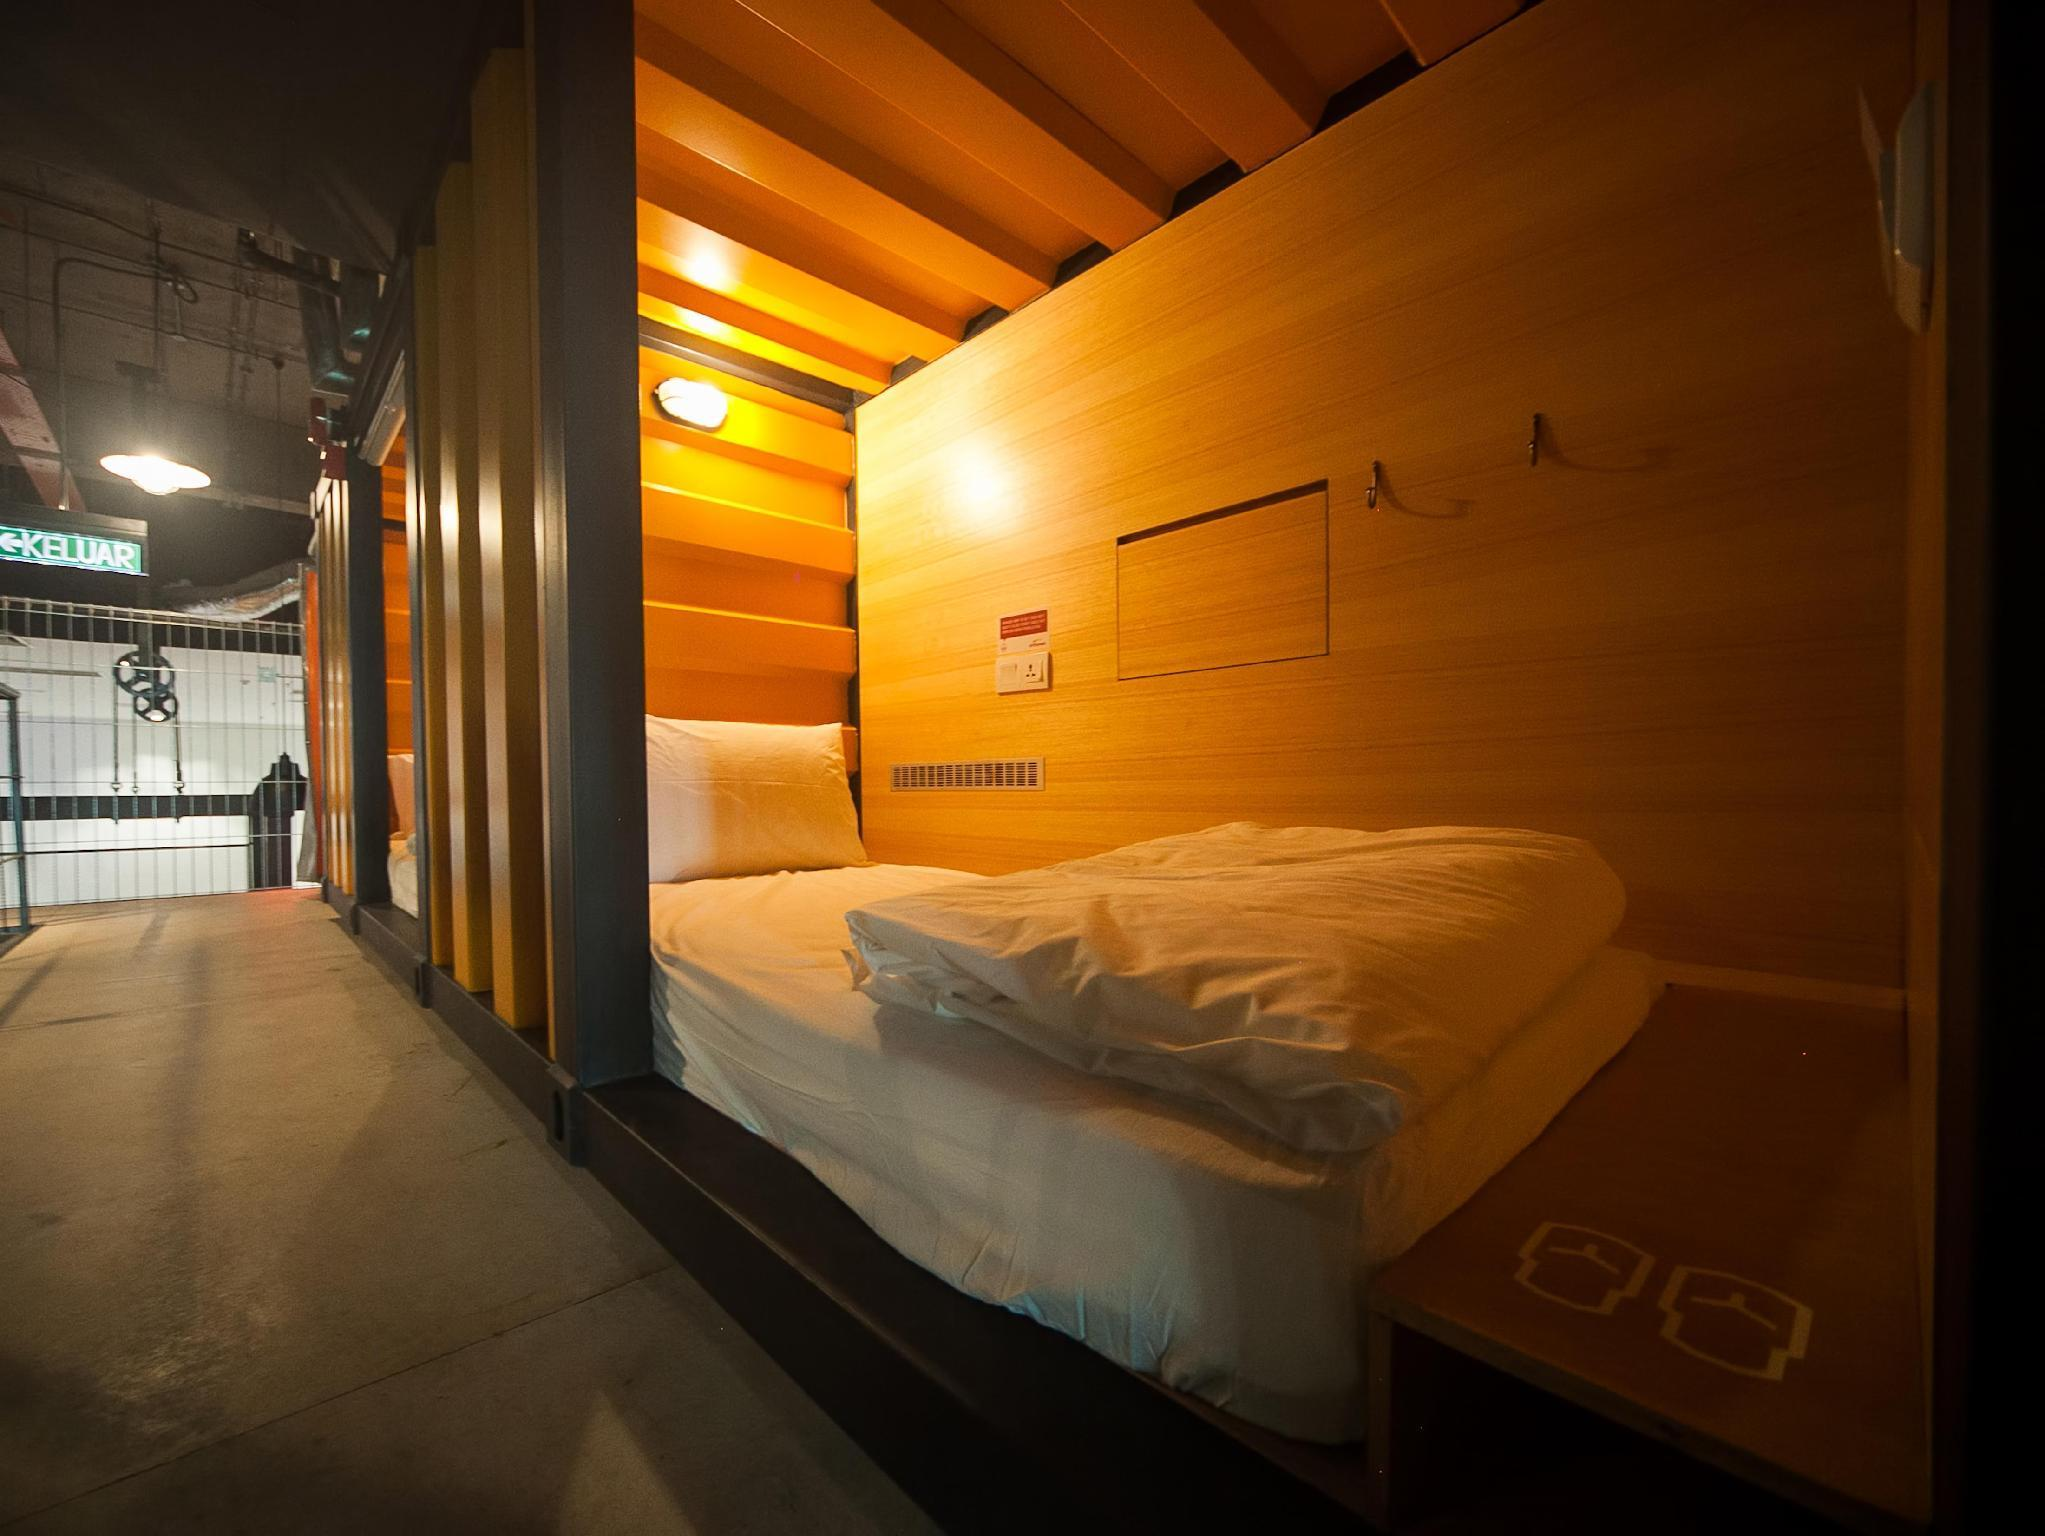 Best Price on Capsule by Container Hotel in Kuala Lumpur + Reviews!